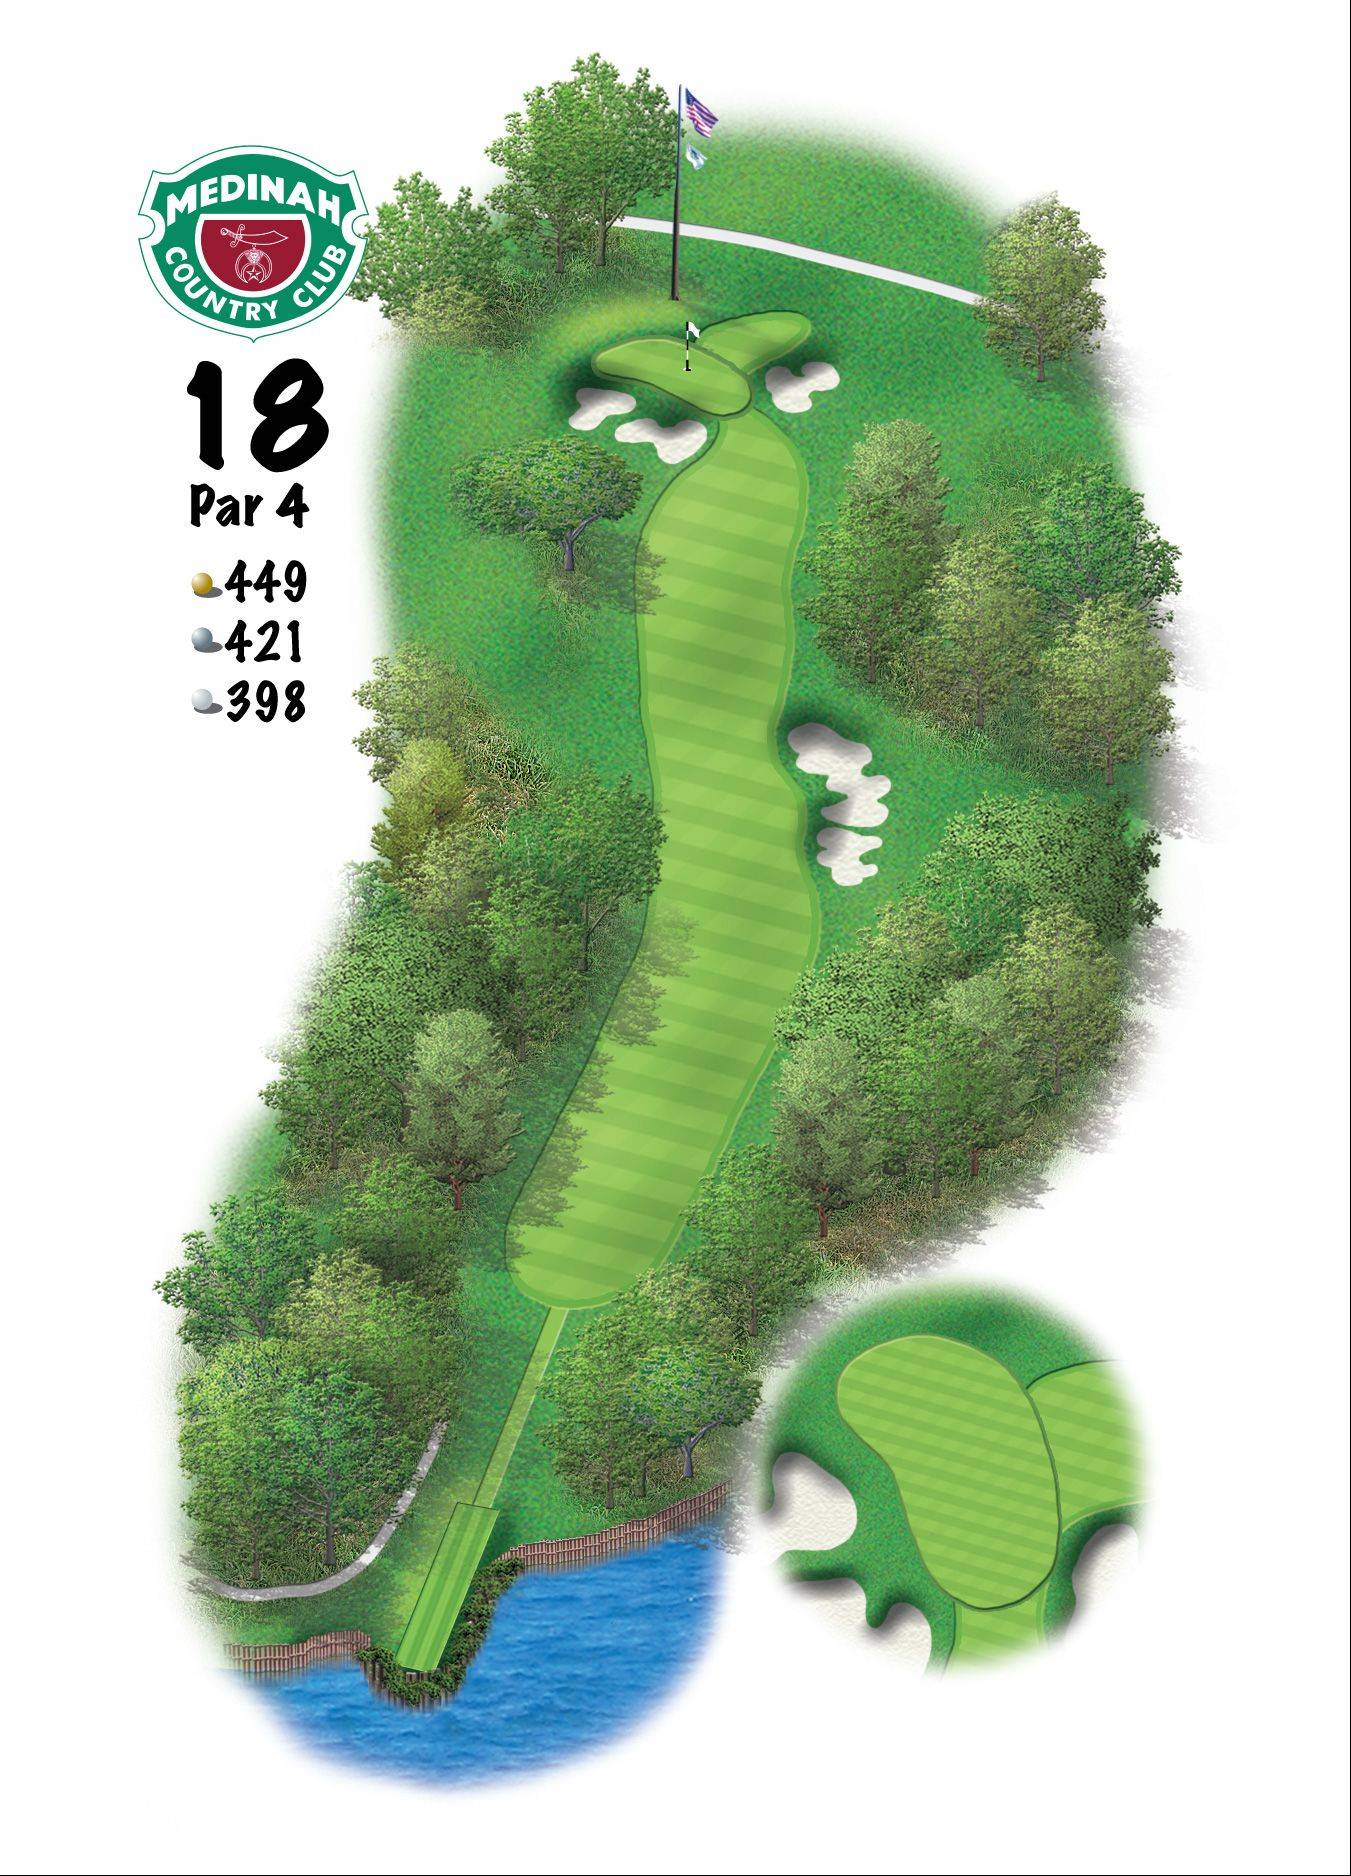 Hole 18 of the Ryder Cup course at Medinah. 449 yards/411 meters, Par-4, This finishing hole was no easy bargain during the 2006 PGA Championship.Off the tee, Rees Jones added a group of bunkers to work the ball from right-to-left. On the approach, the green has been raised in the air almost one story high, and is flanked by some steep bunkers. The green, itself, is pitched from back-to-front, with a collection area in the back-right, with up and down to a back-right hole location almost impossible.